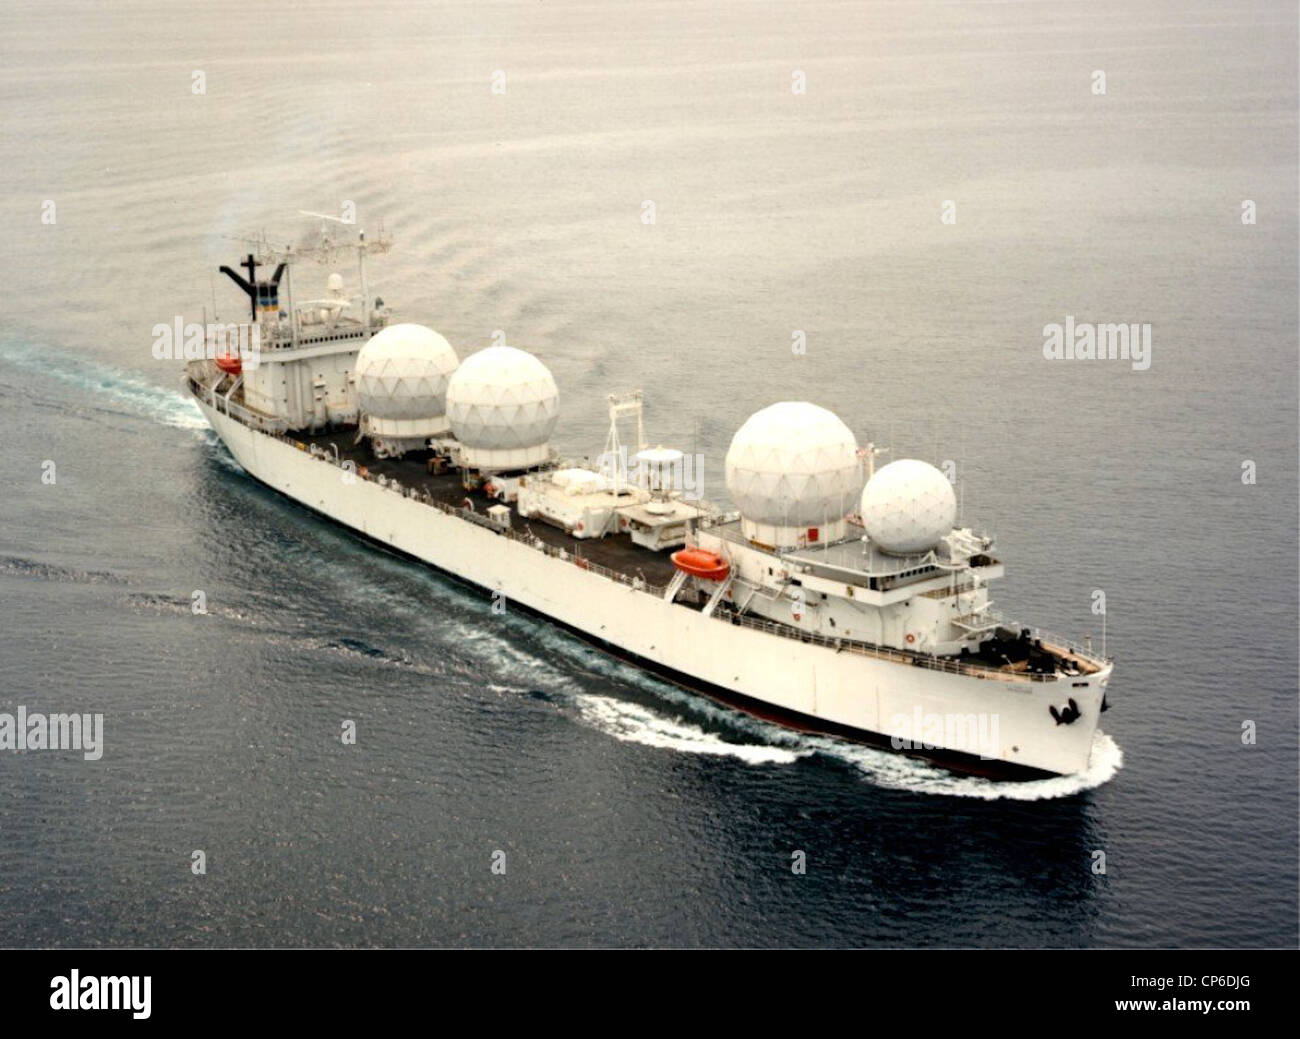 USNS Redstone (T-AGM-20) Stock Photo